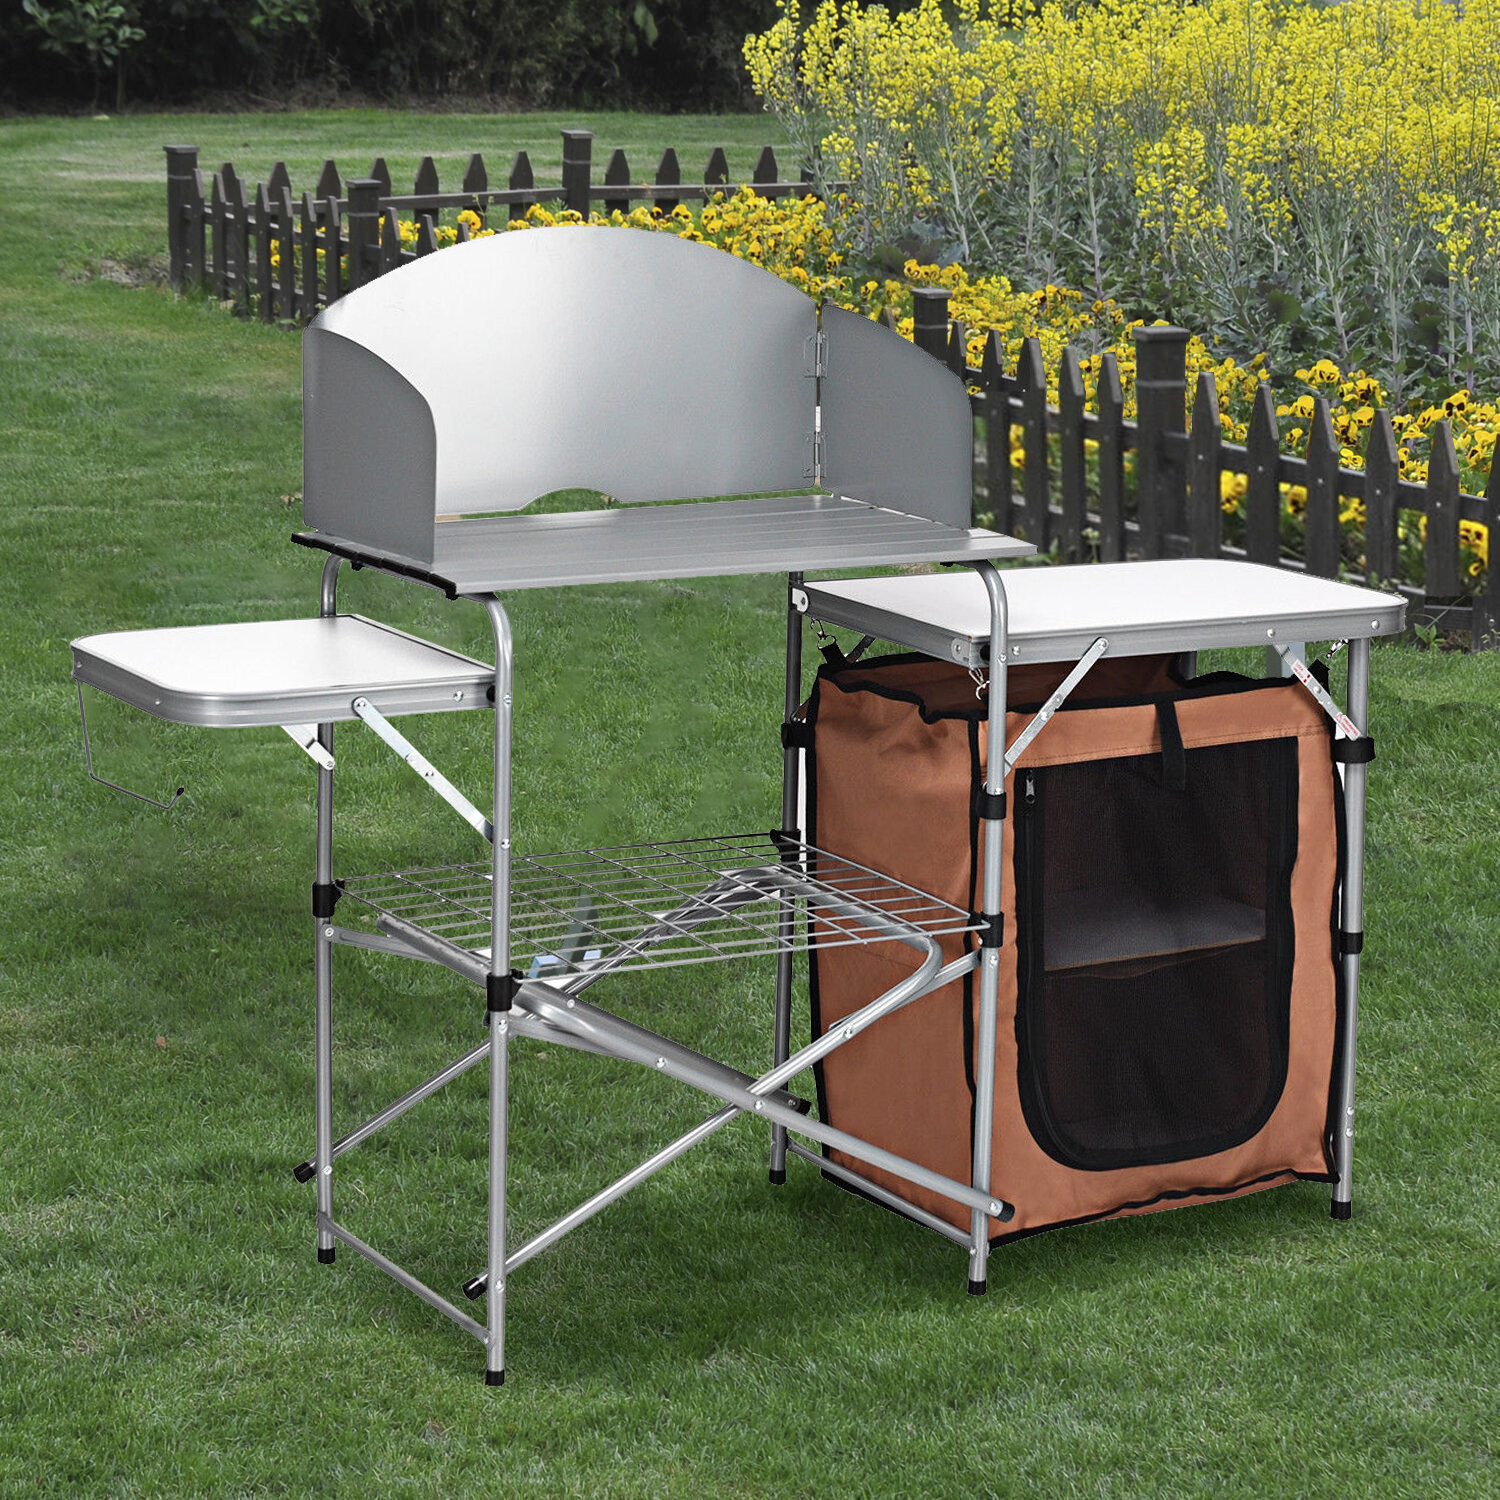 Arlmont Co Lawson Folding Camping Table With Windscreen Bag Wayfair